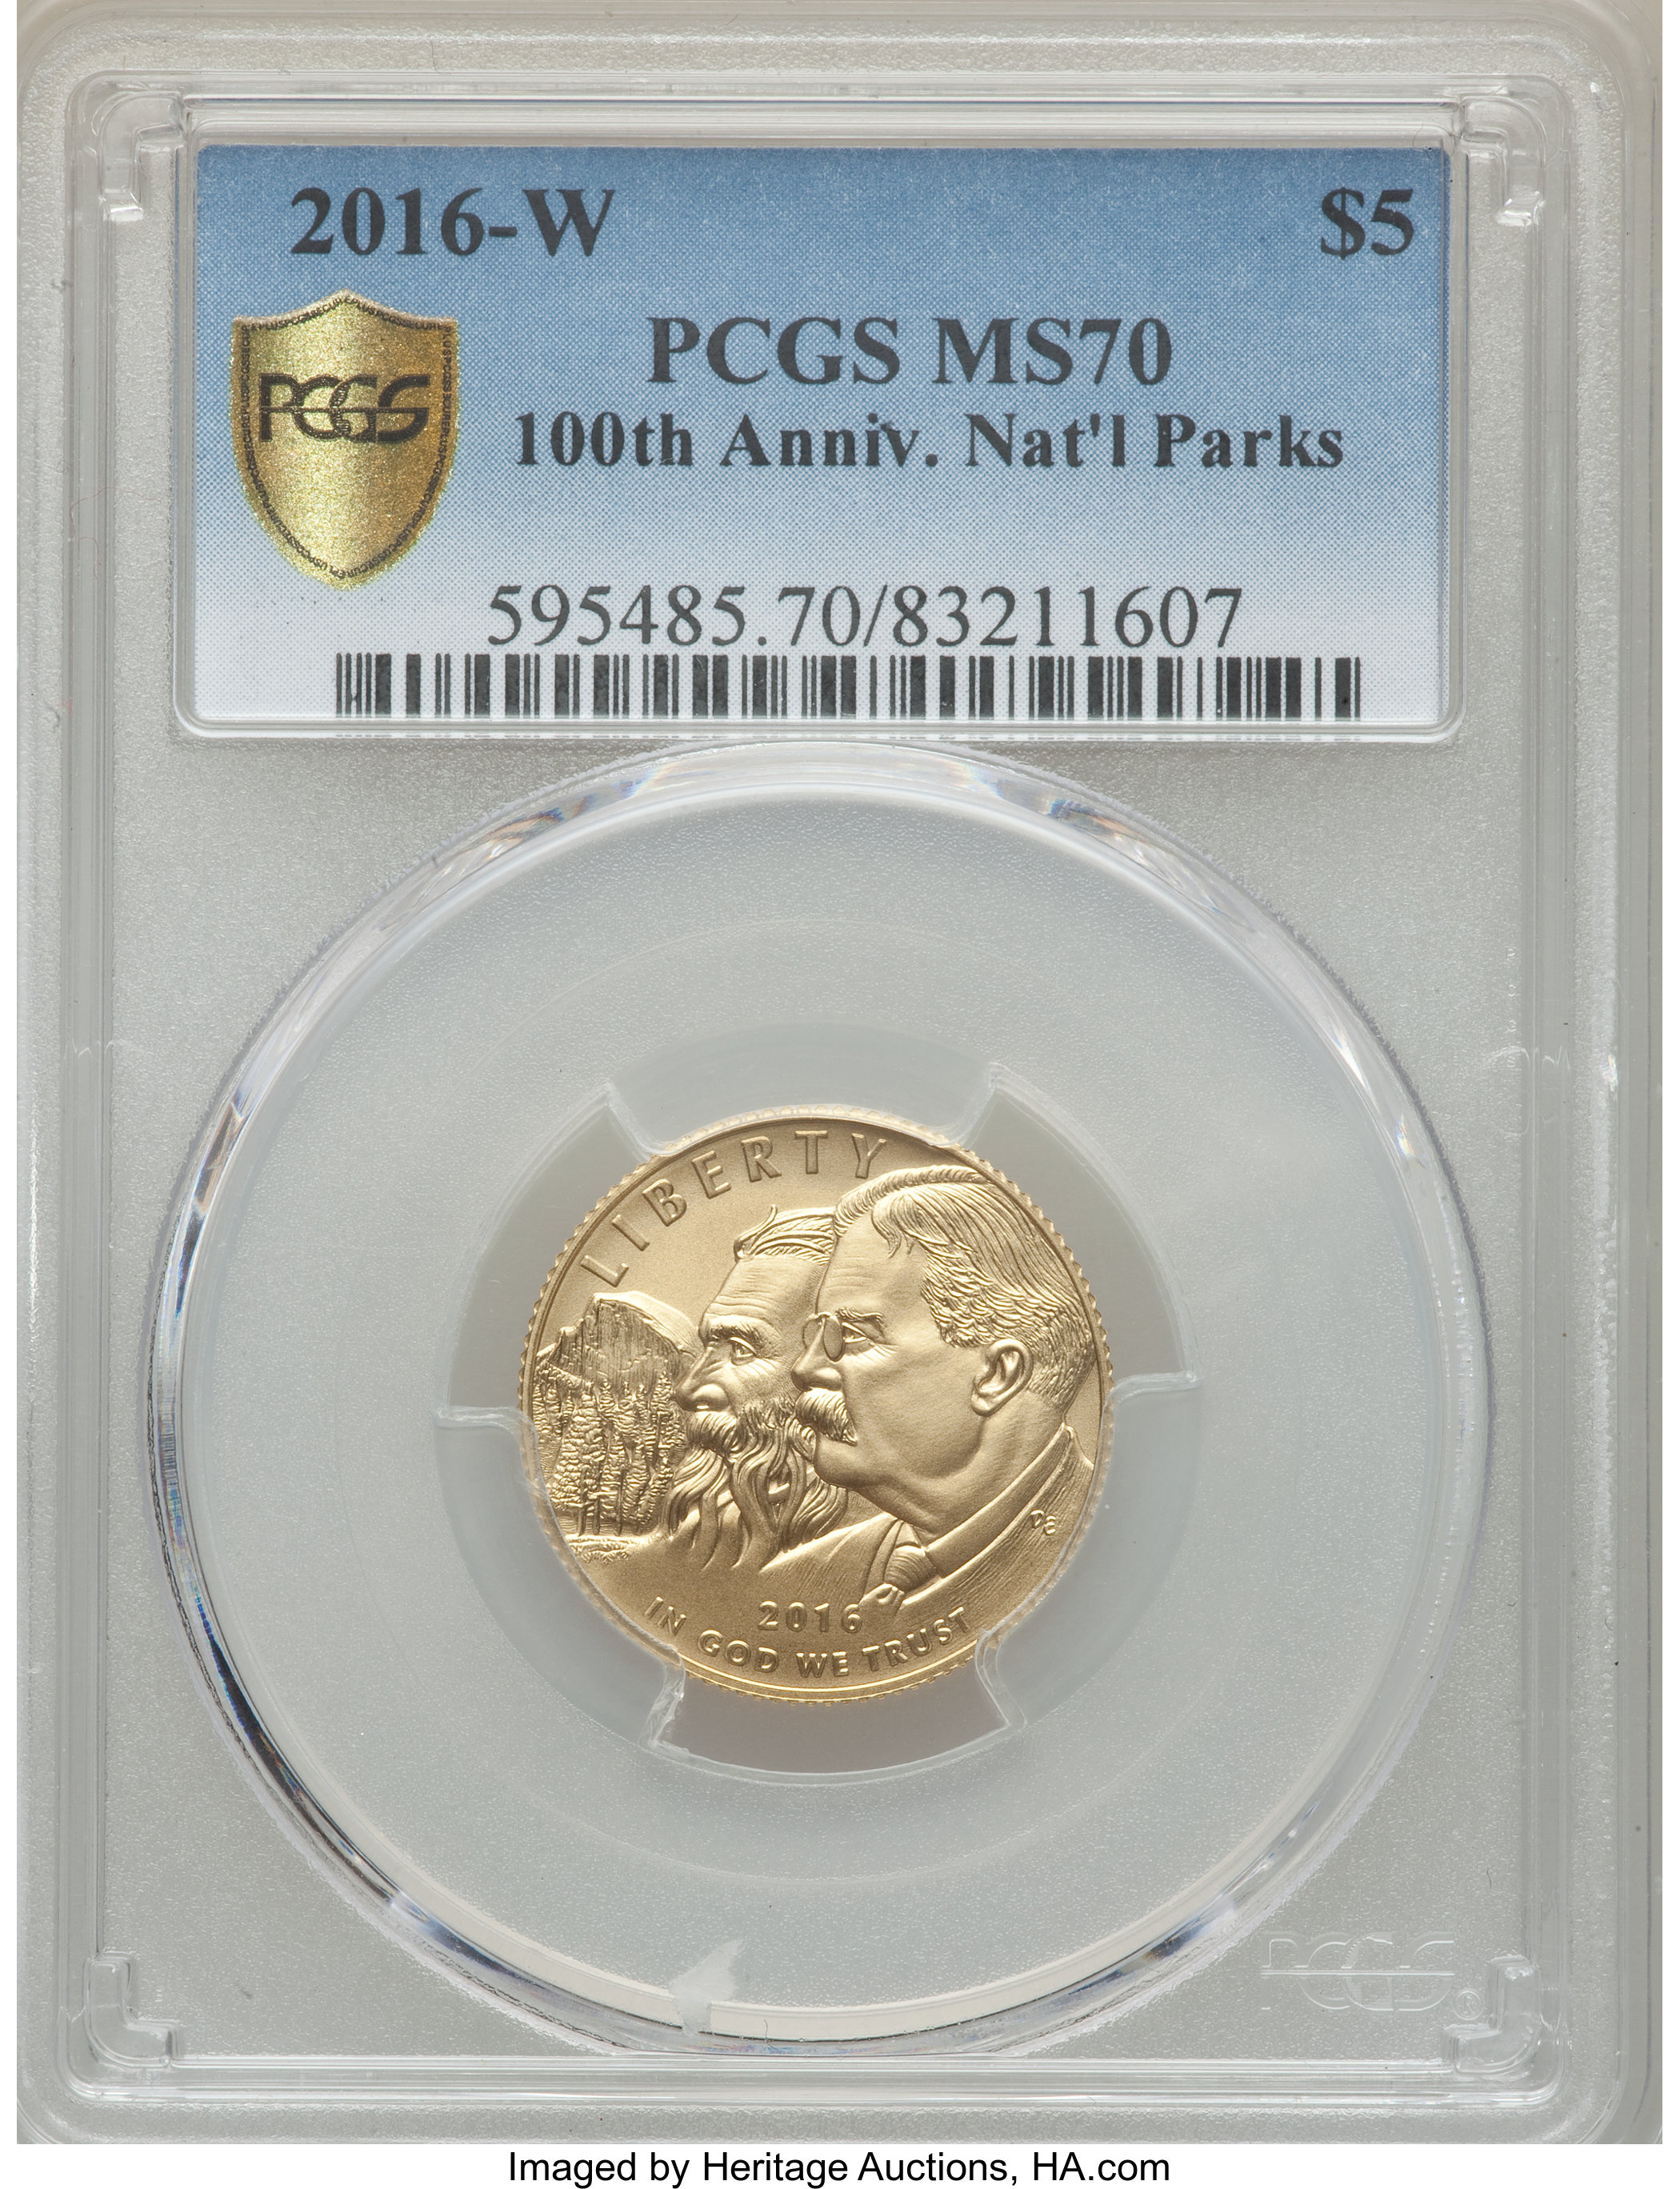 2016 W $5 Gold Coin NGC MS70-100th Anniversary National Park Service